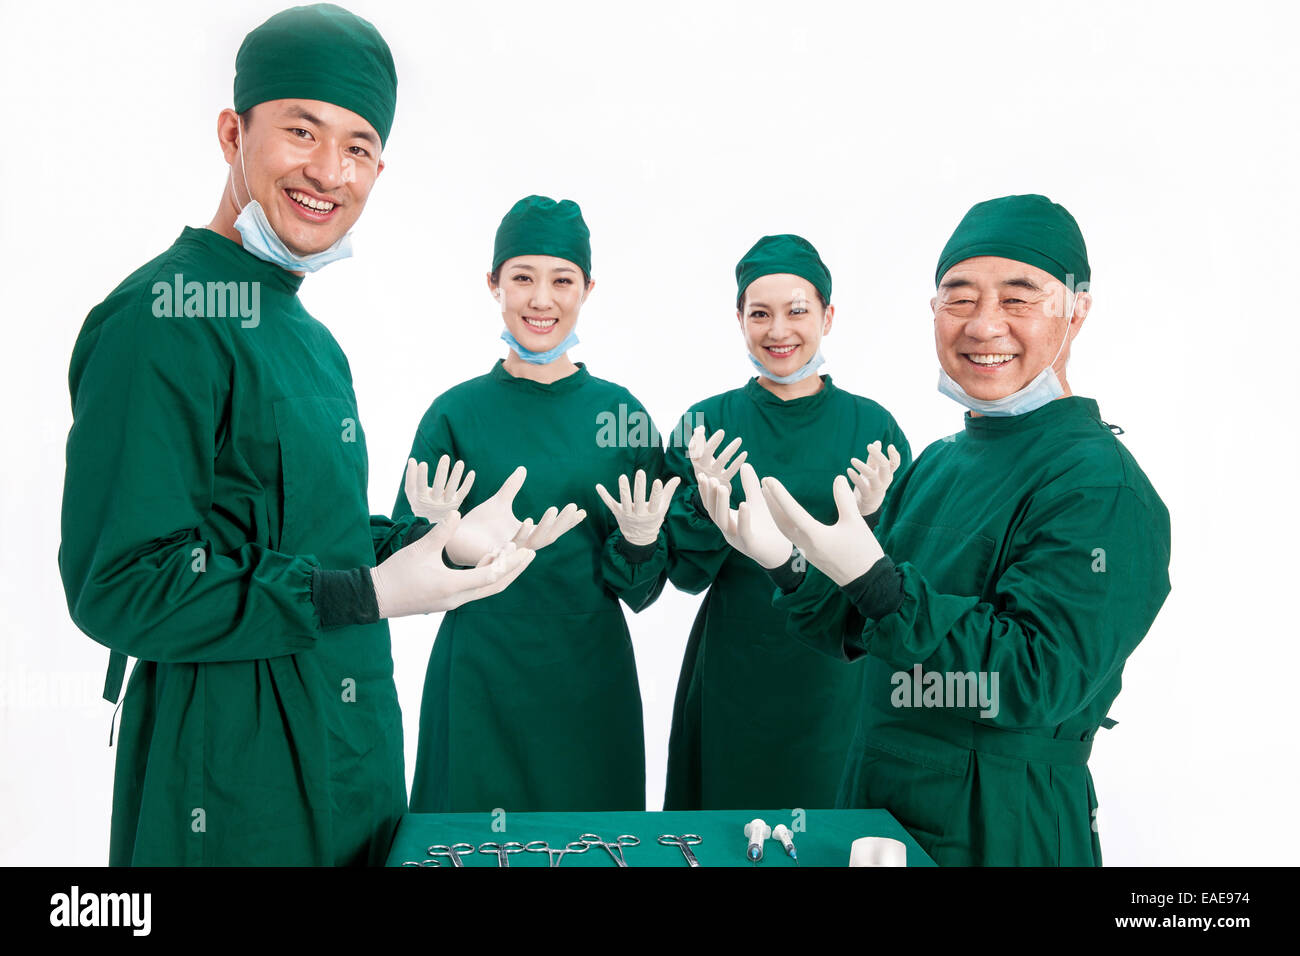 Four portrait of doctors on white background - Stock Image